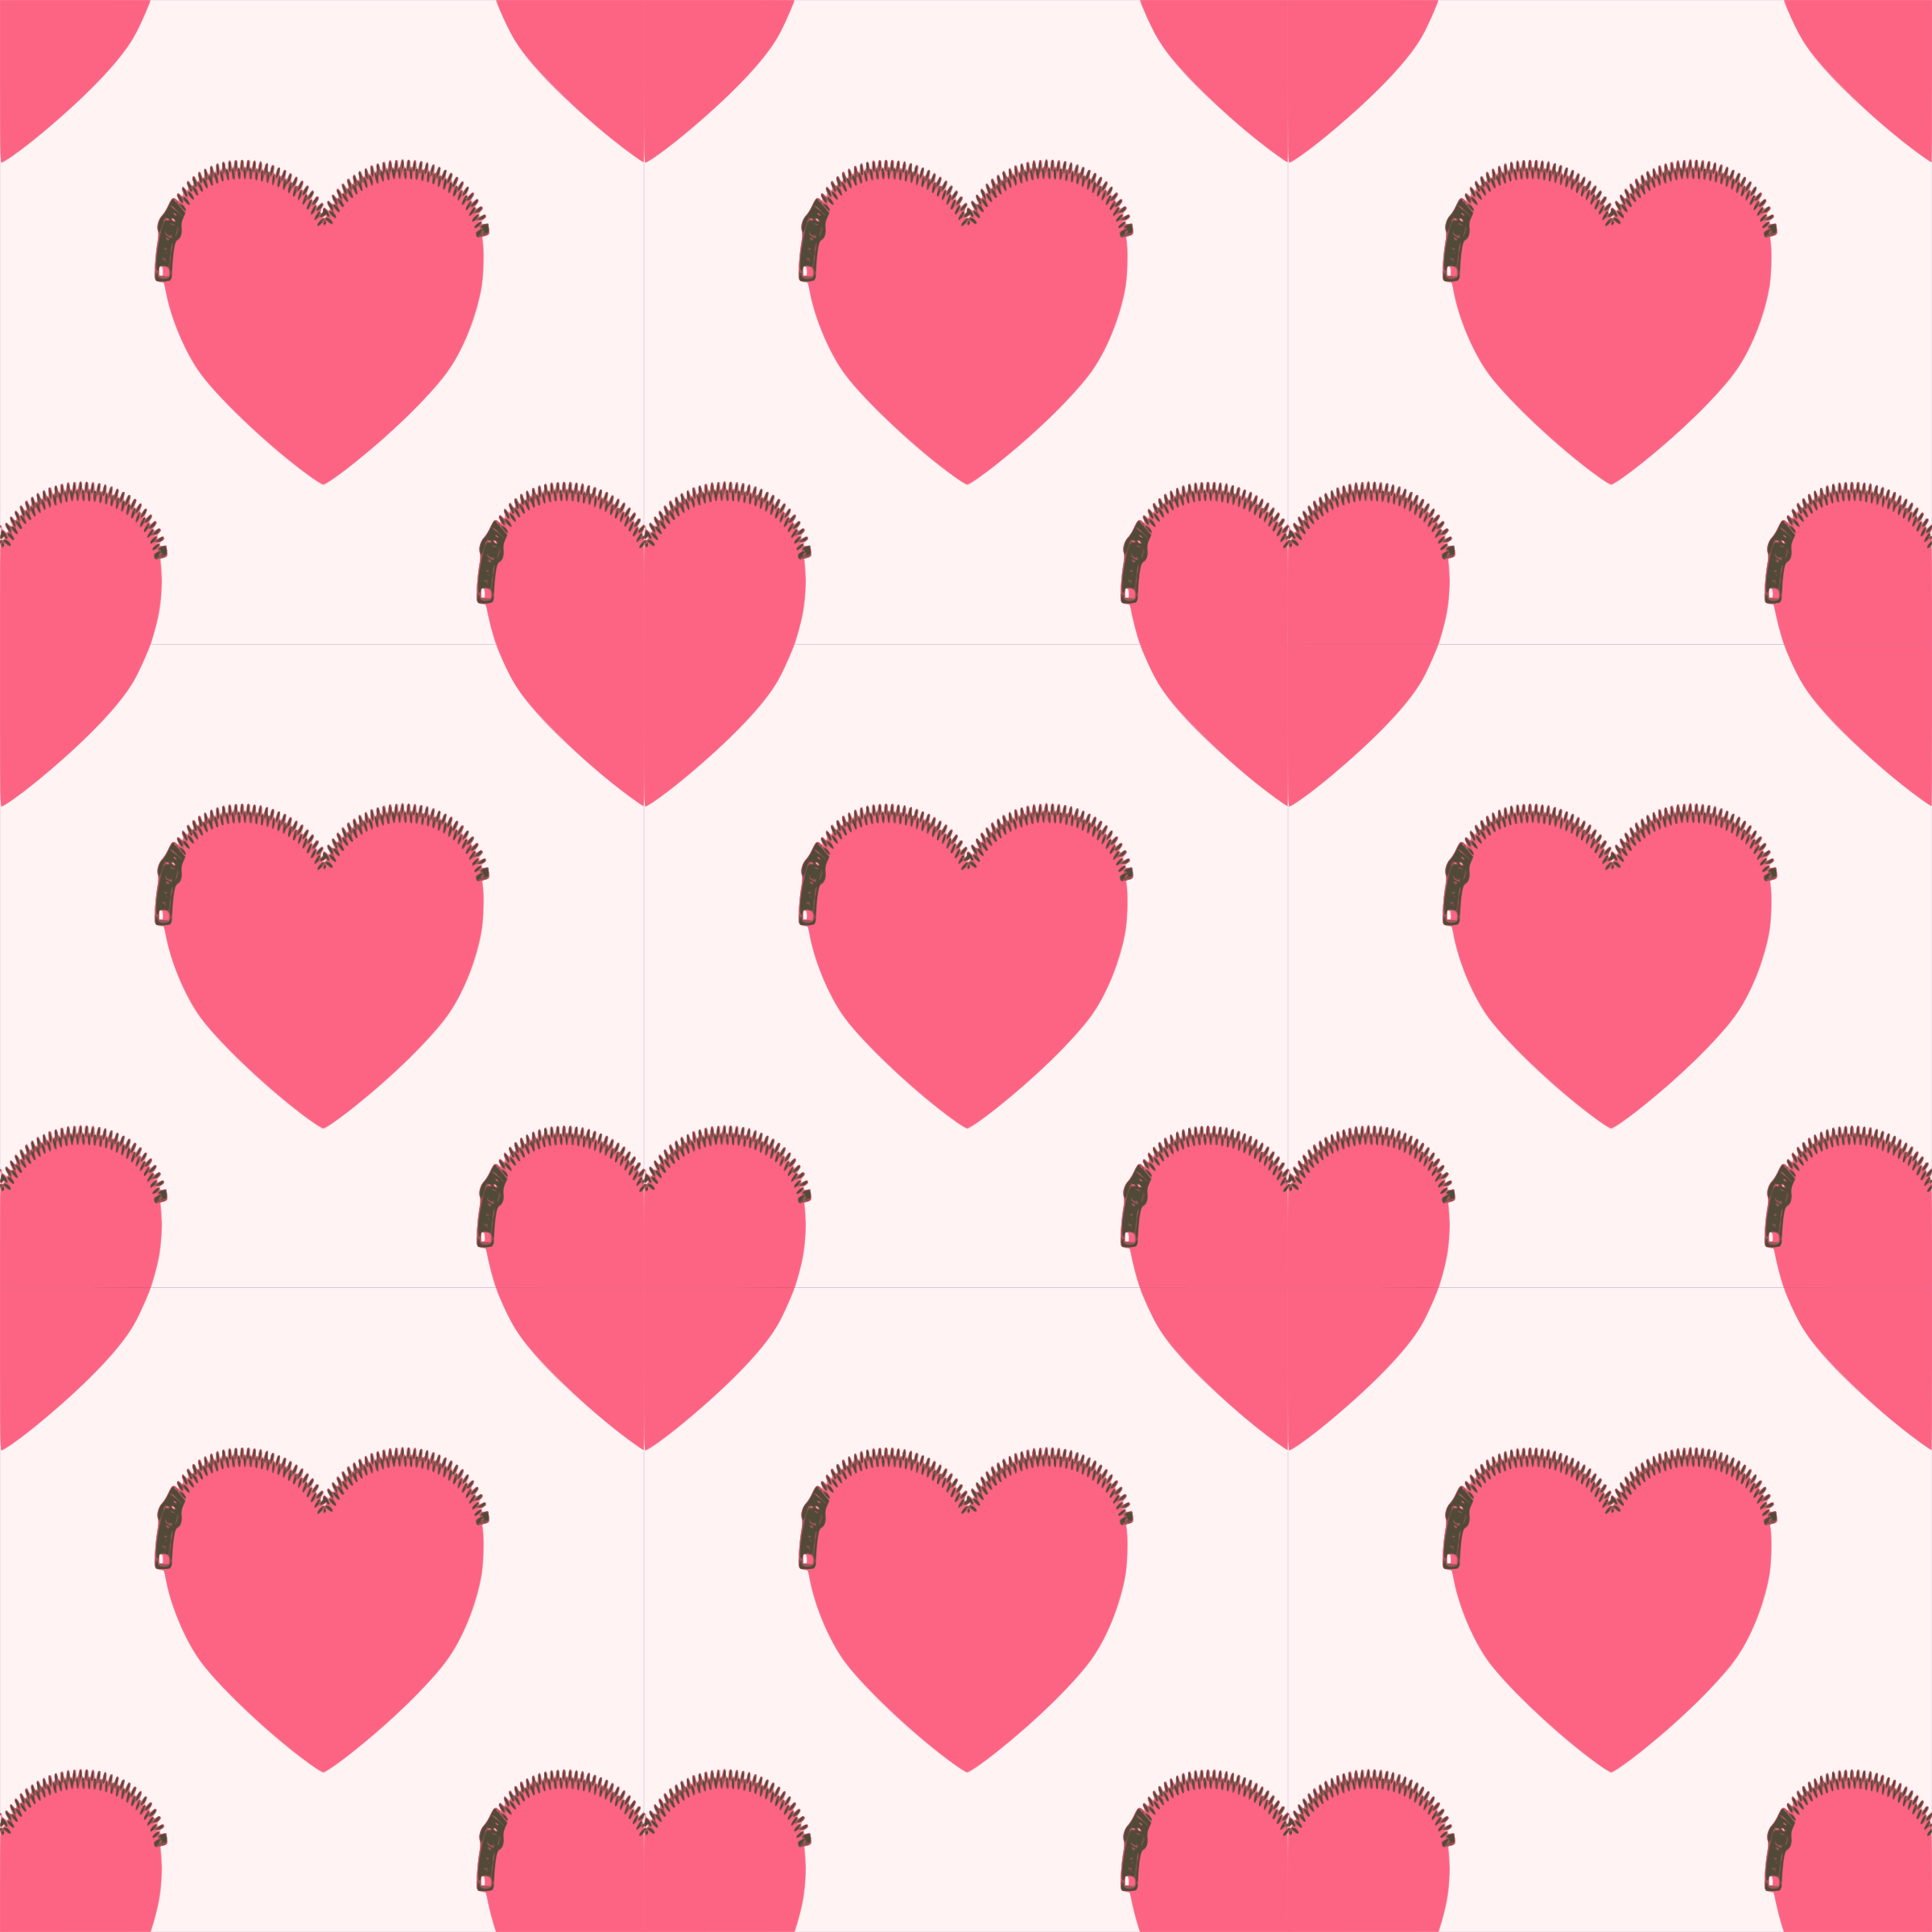 Heart pattern clipart banner library stock Clipart - Heartshaped purse-seamless pattern banner library stock